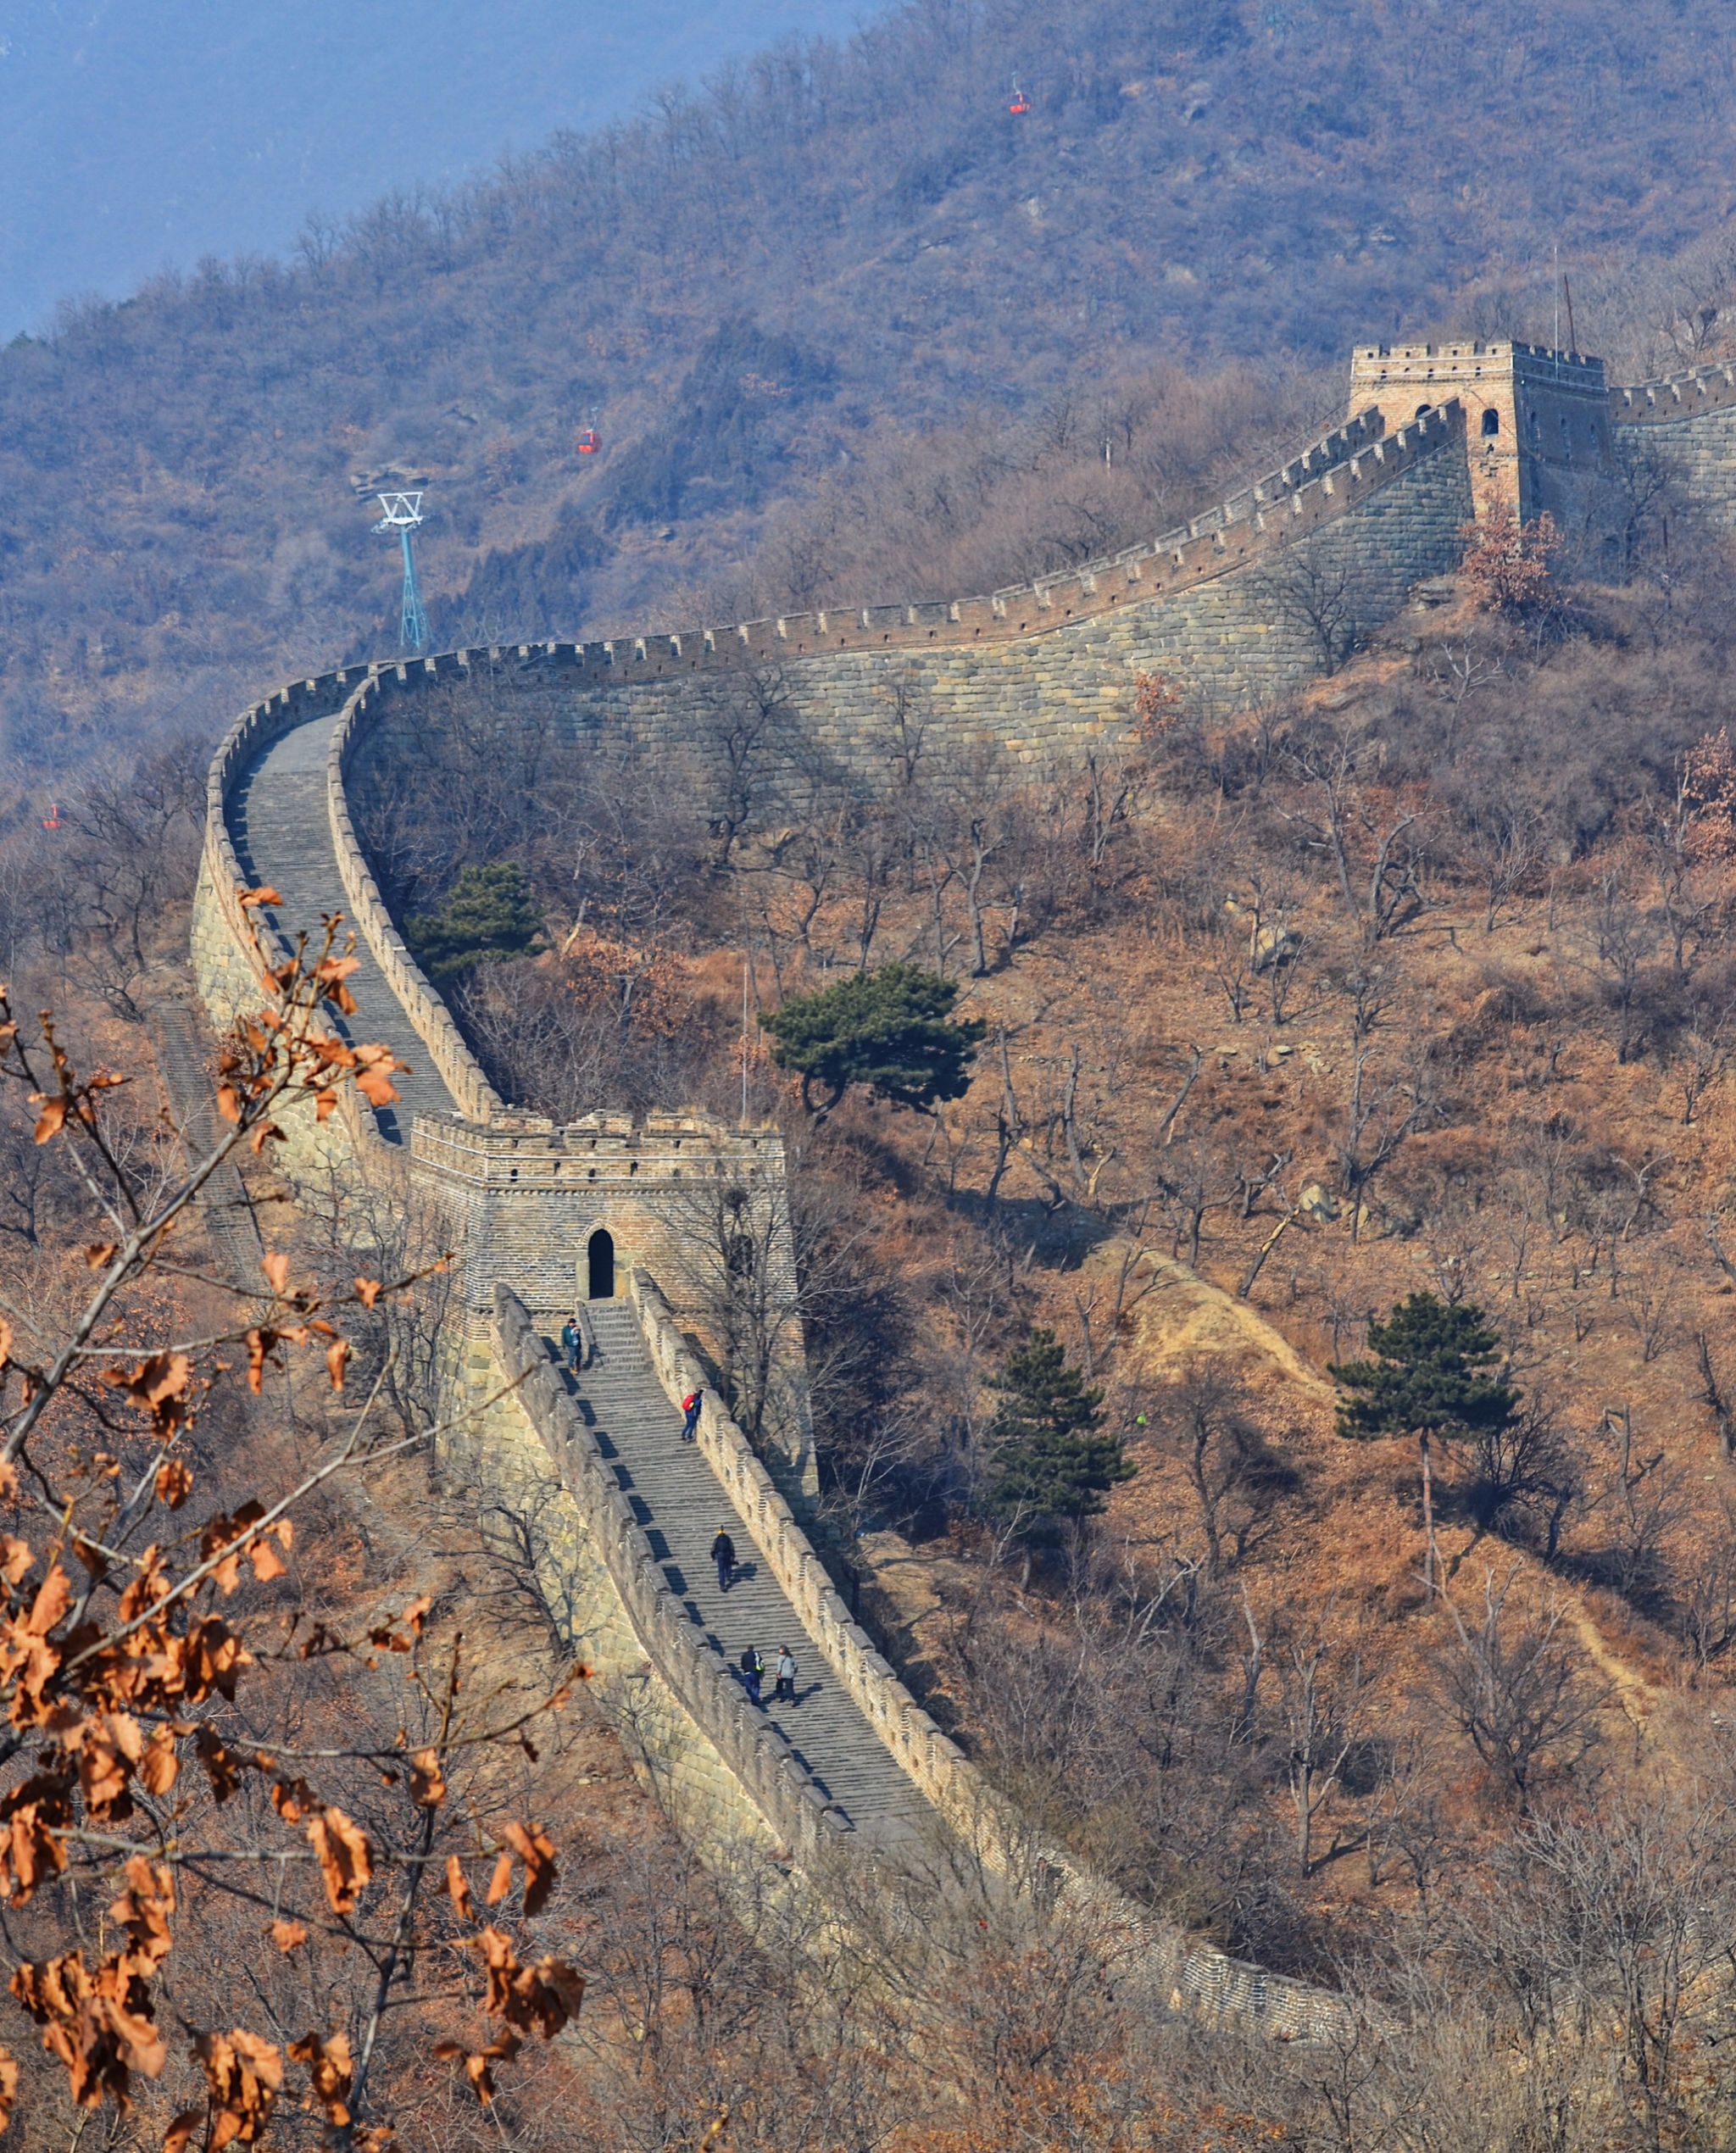 image of the Great Wall of China from the Ultimate Travelist